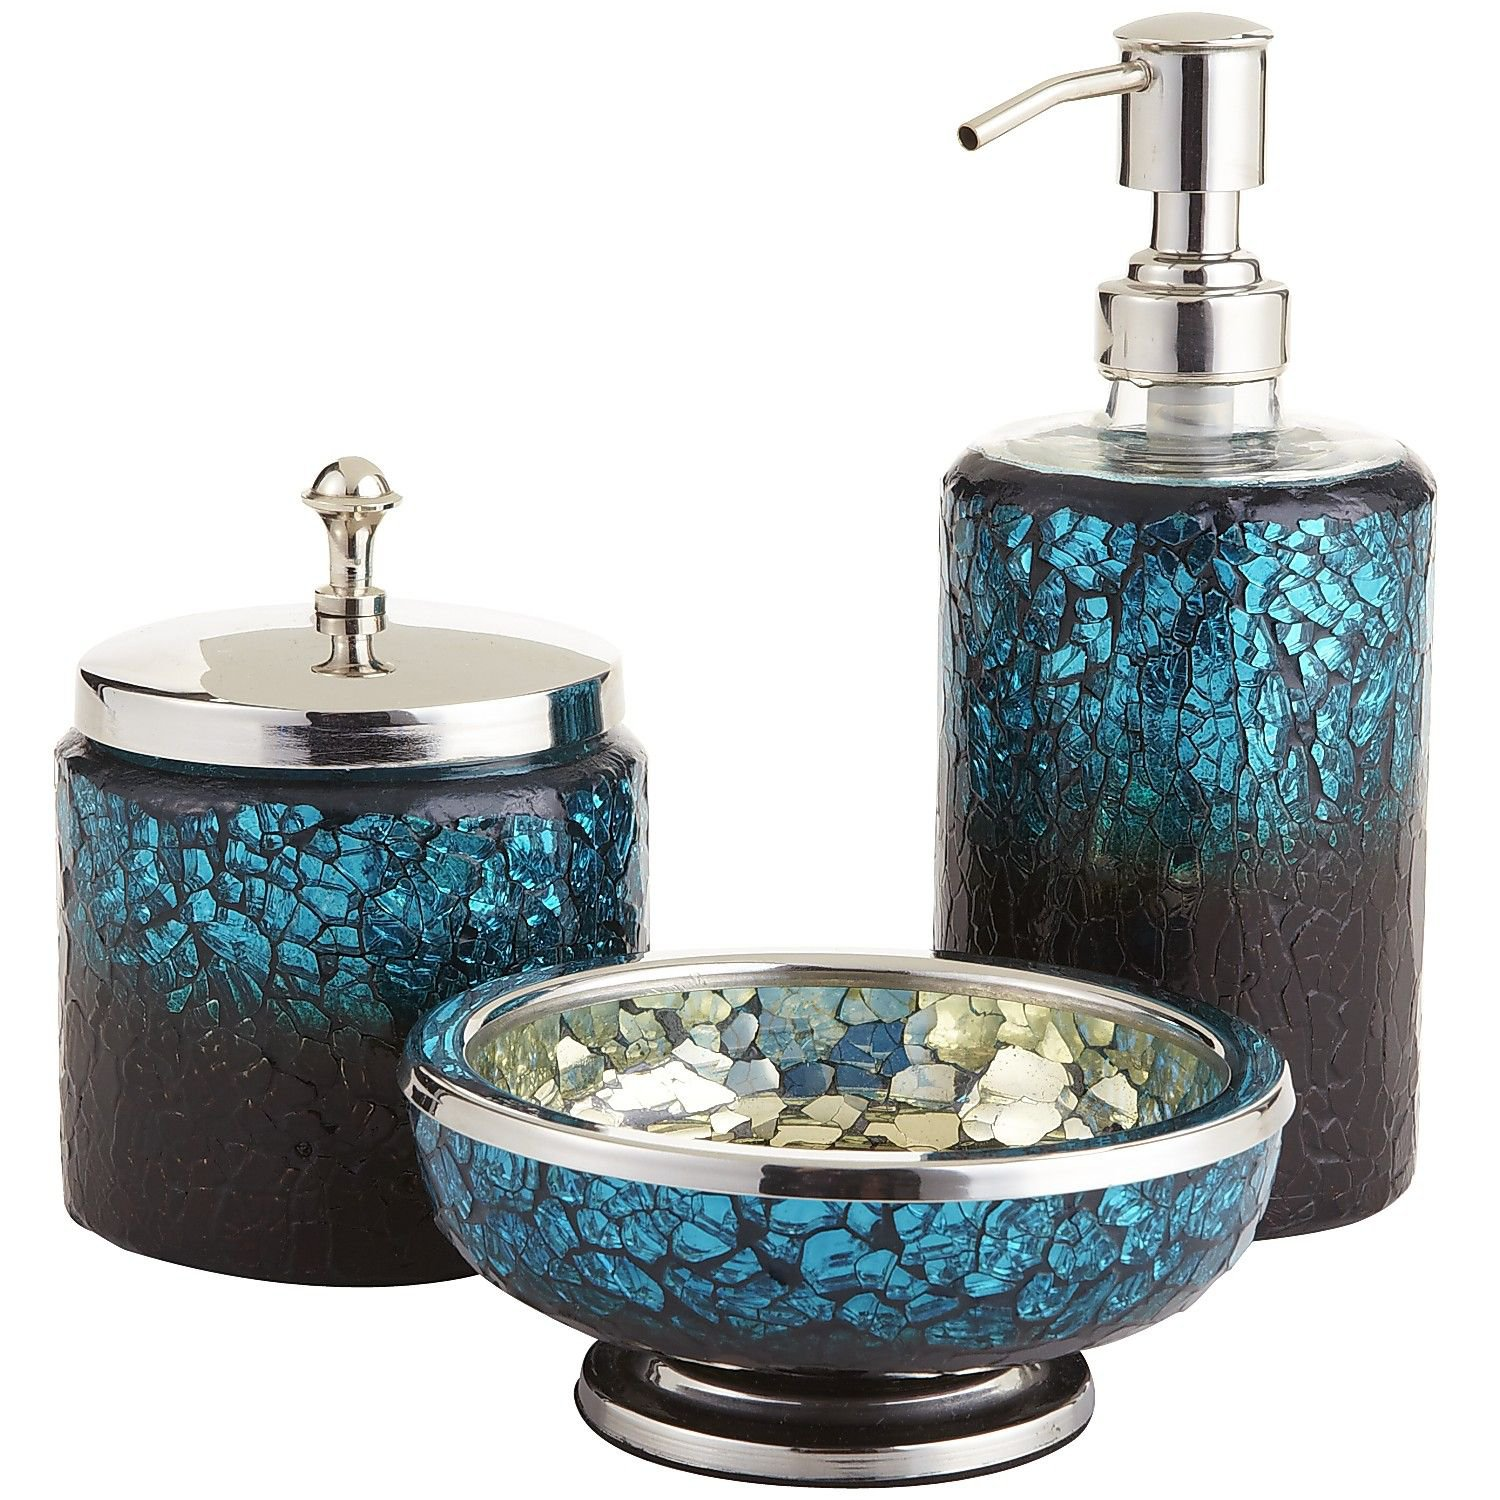 Peacock mosaic bath accessories from pier 1 imports for the for Where to find bathroom accessories